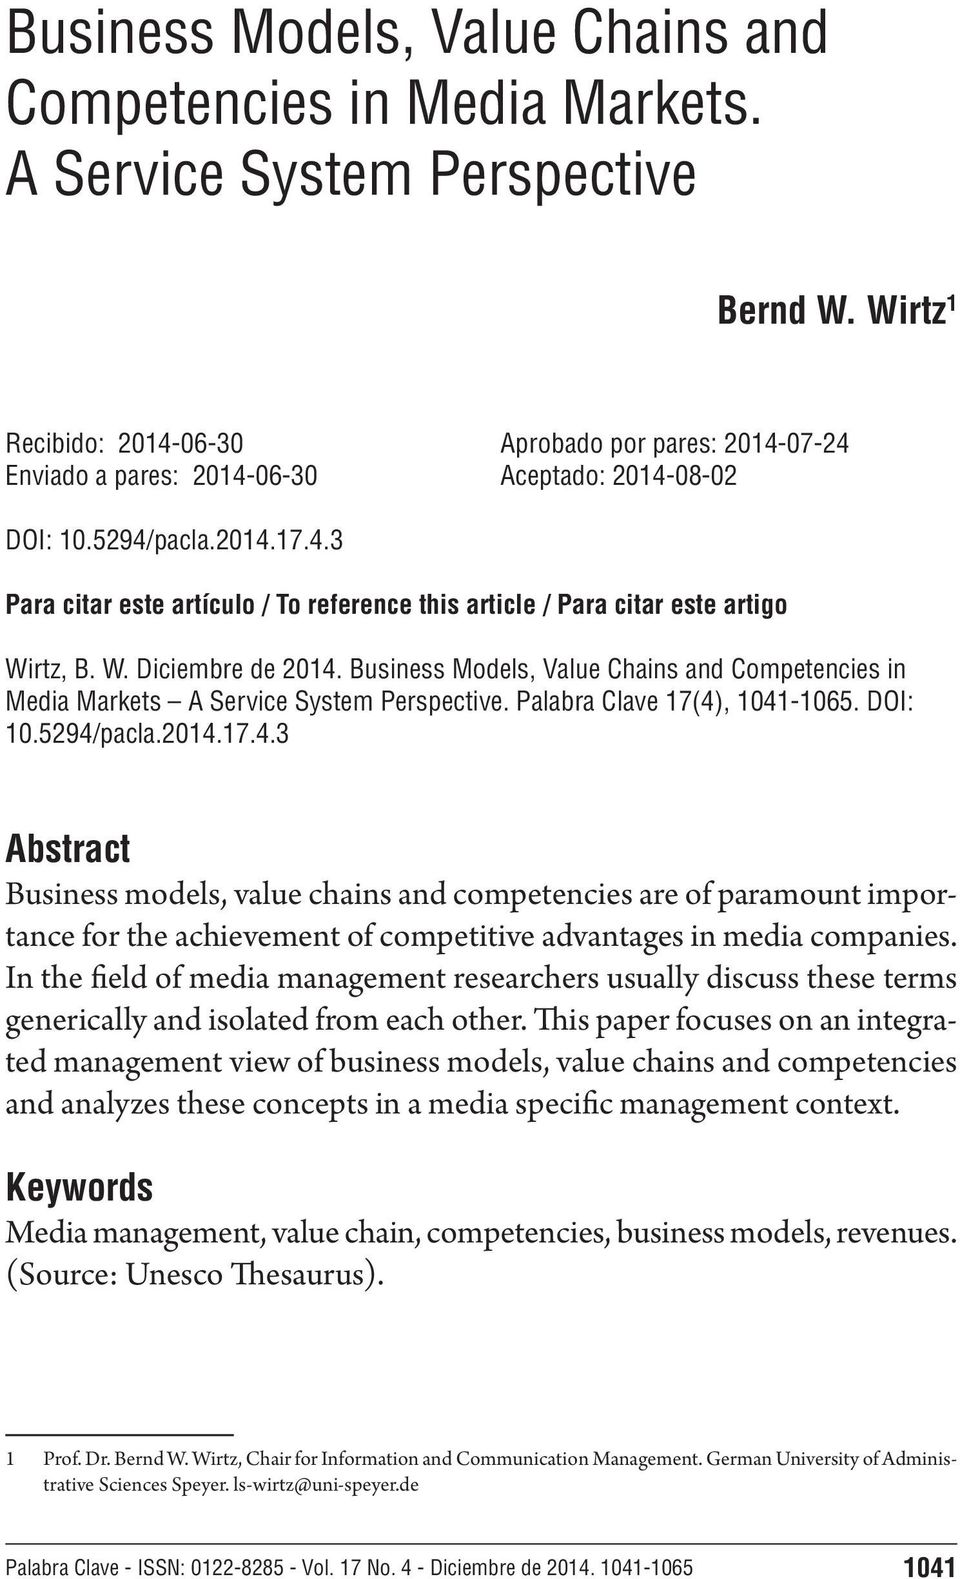 W. Diciembre de 2014. Business Models, Value Chains and Competencies in Media Markets A Service System Perspective. Palabra Clave 17(4), 1041-1065. DOI: 10.5294/pacla.2014.17.4.3 Abstract Business models, value chains and competencies are of paramount importance for the achievement of competitive advantages in media companies.